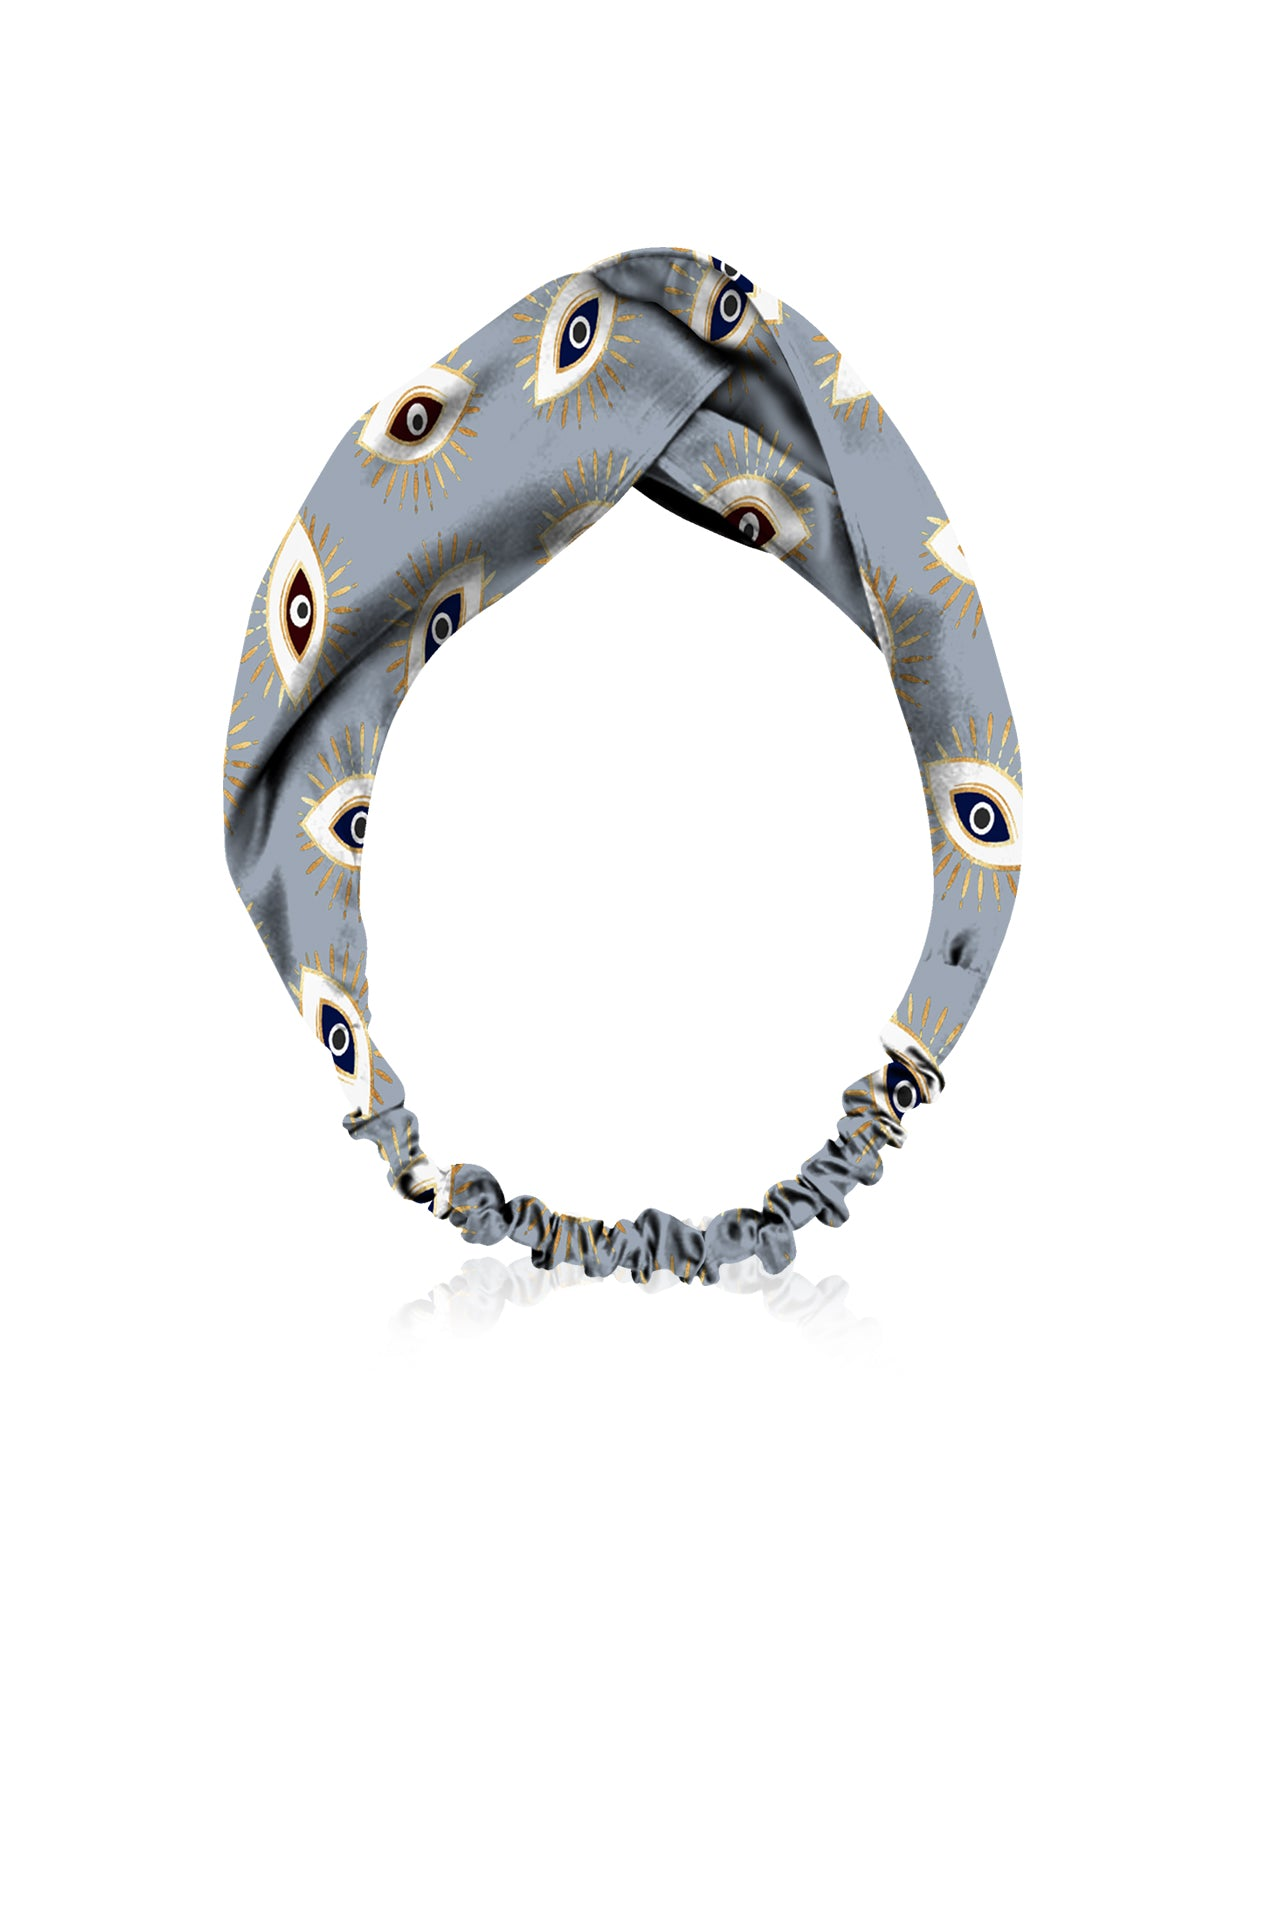 Biodegrabble Vegan Fabrics Headband in Evile Eye  Grey